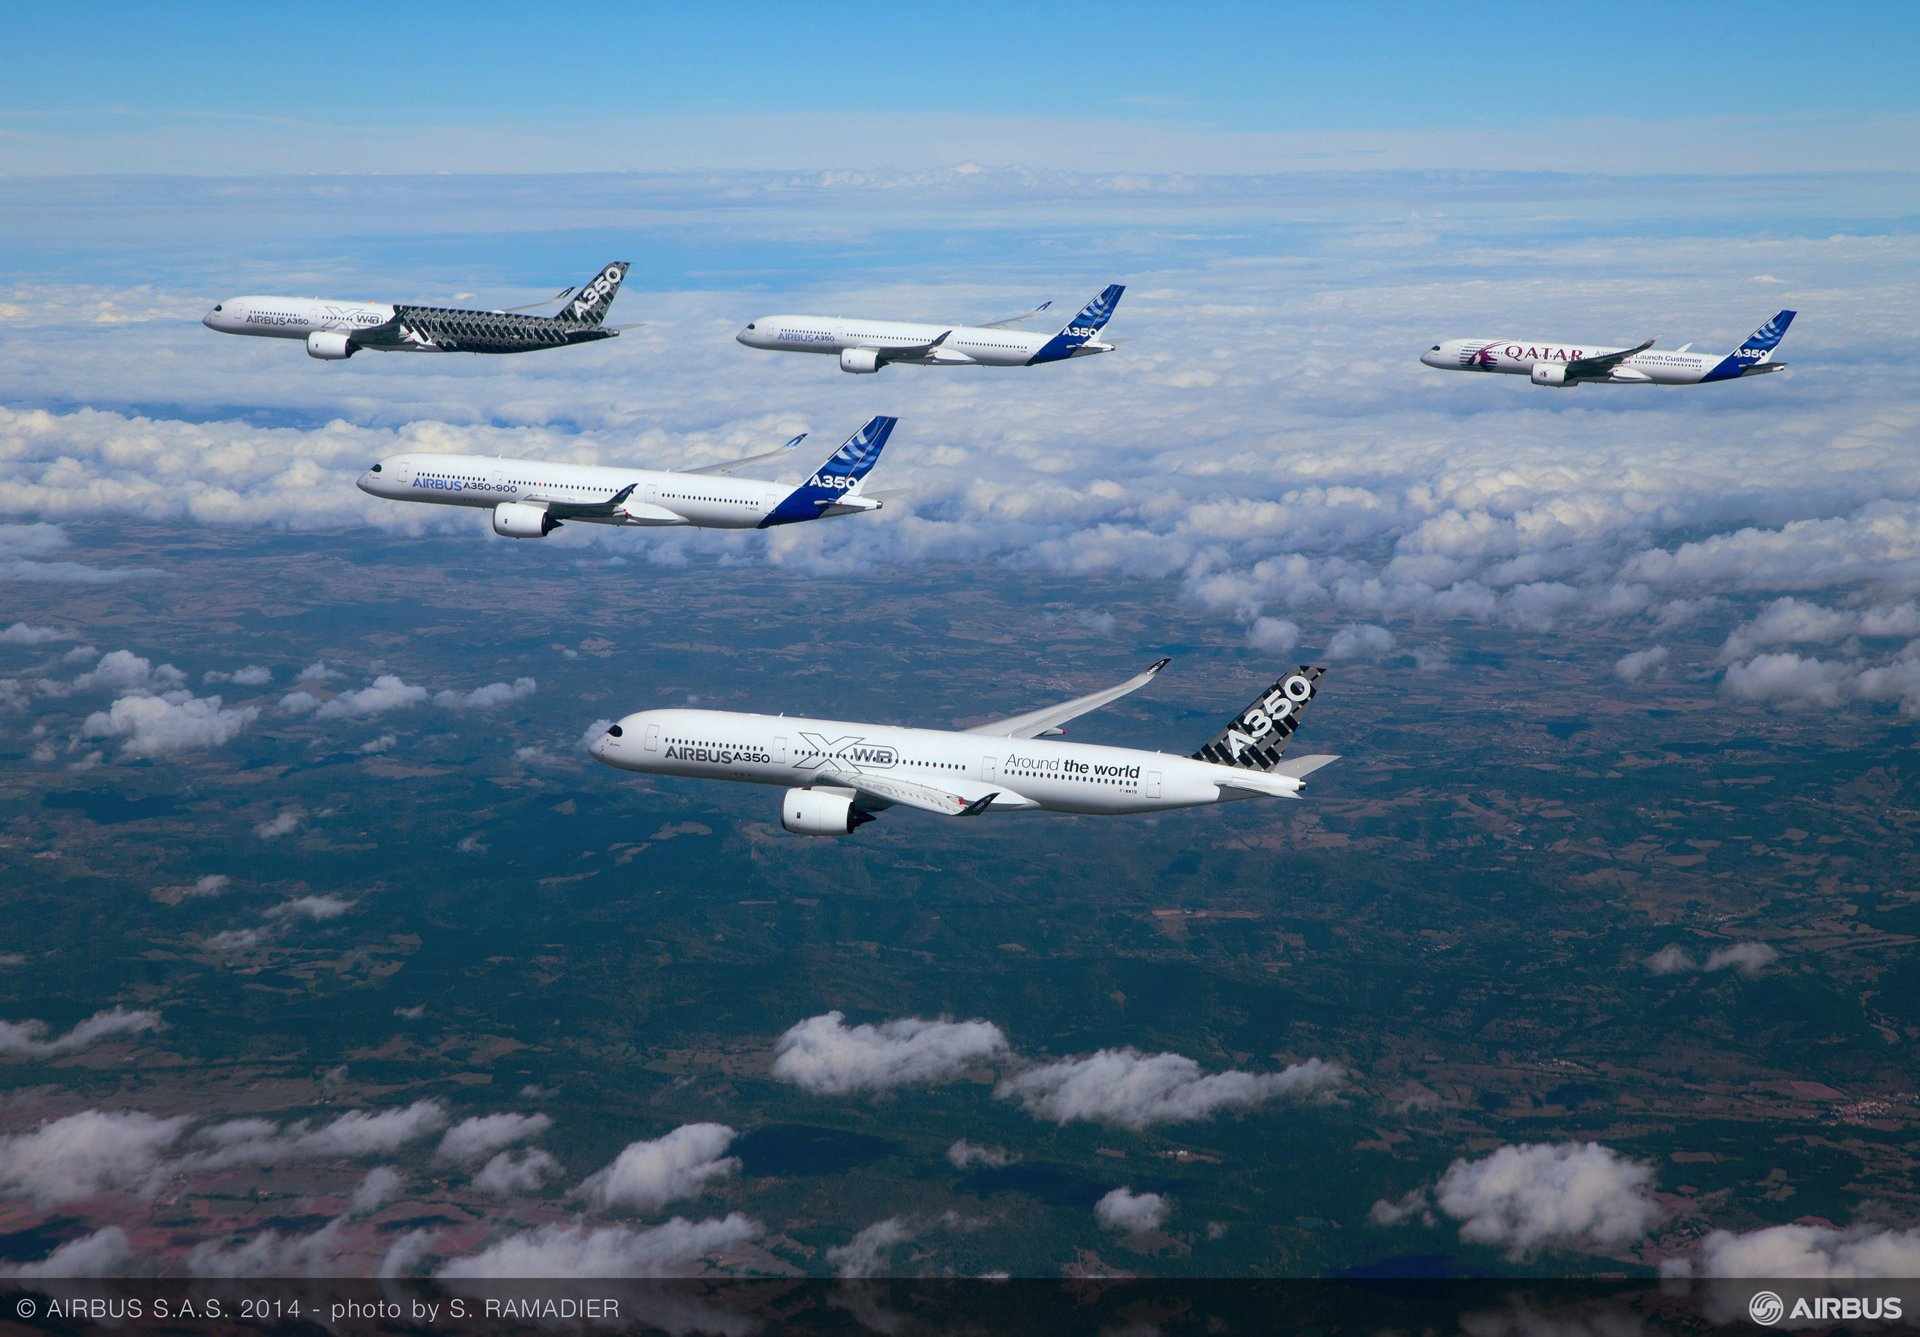 A350 XWB – Test aircraft formation flight 3